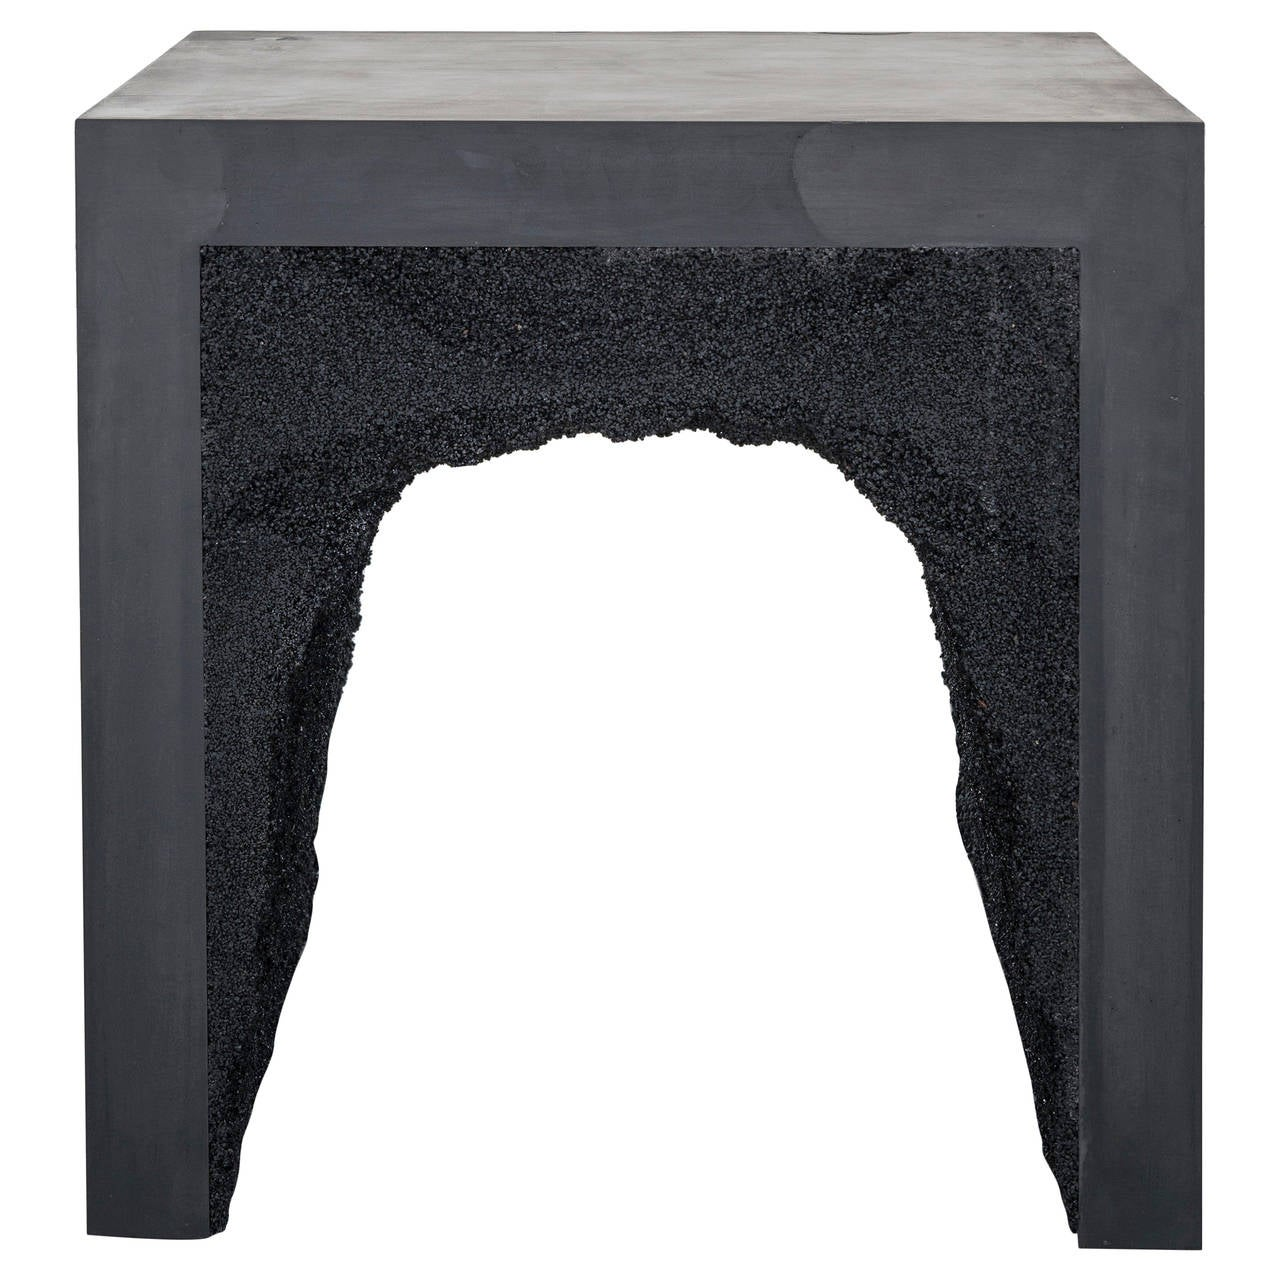 browse cement furniture black cement and black silica side table by fernando mastrangelo for cement furniture